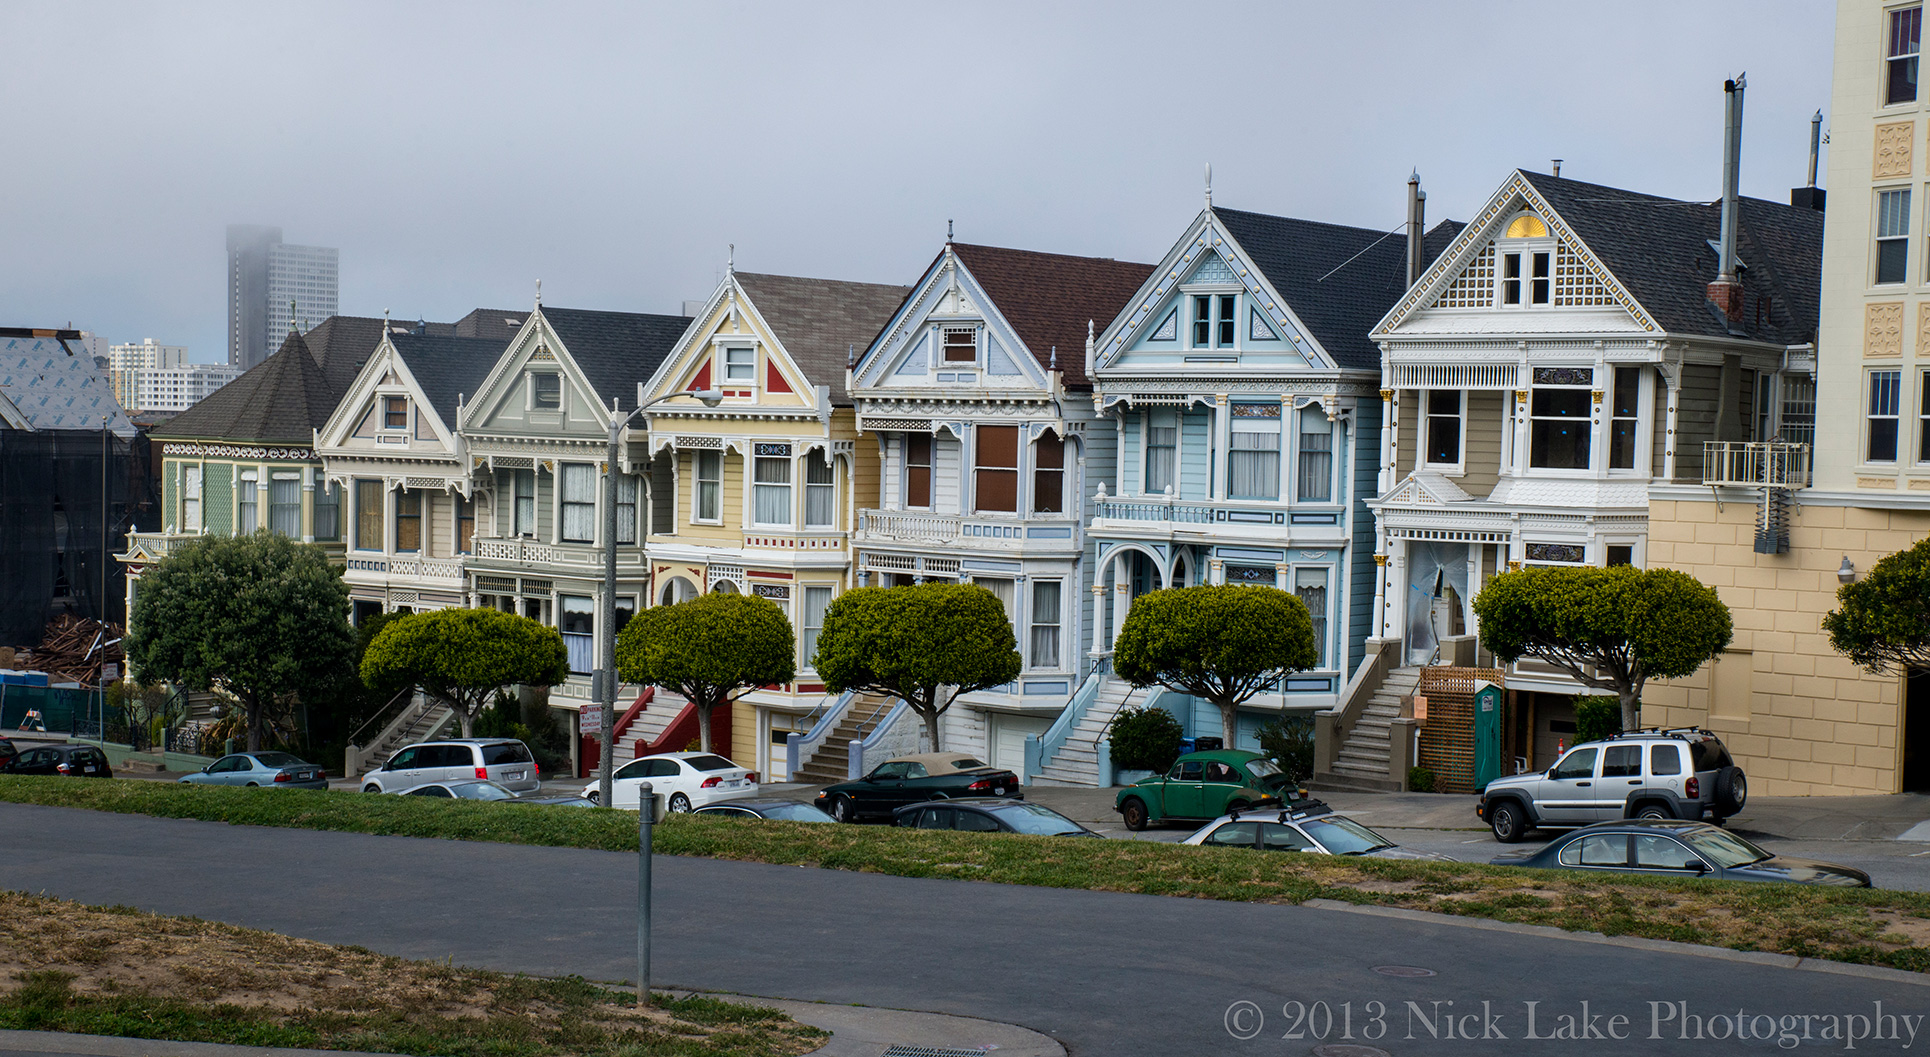 The Painted Ladies are famous from Full House